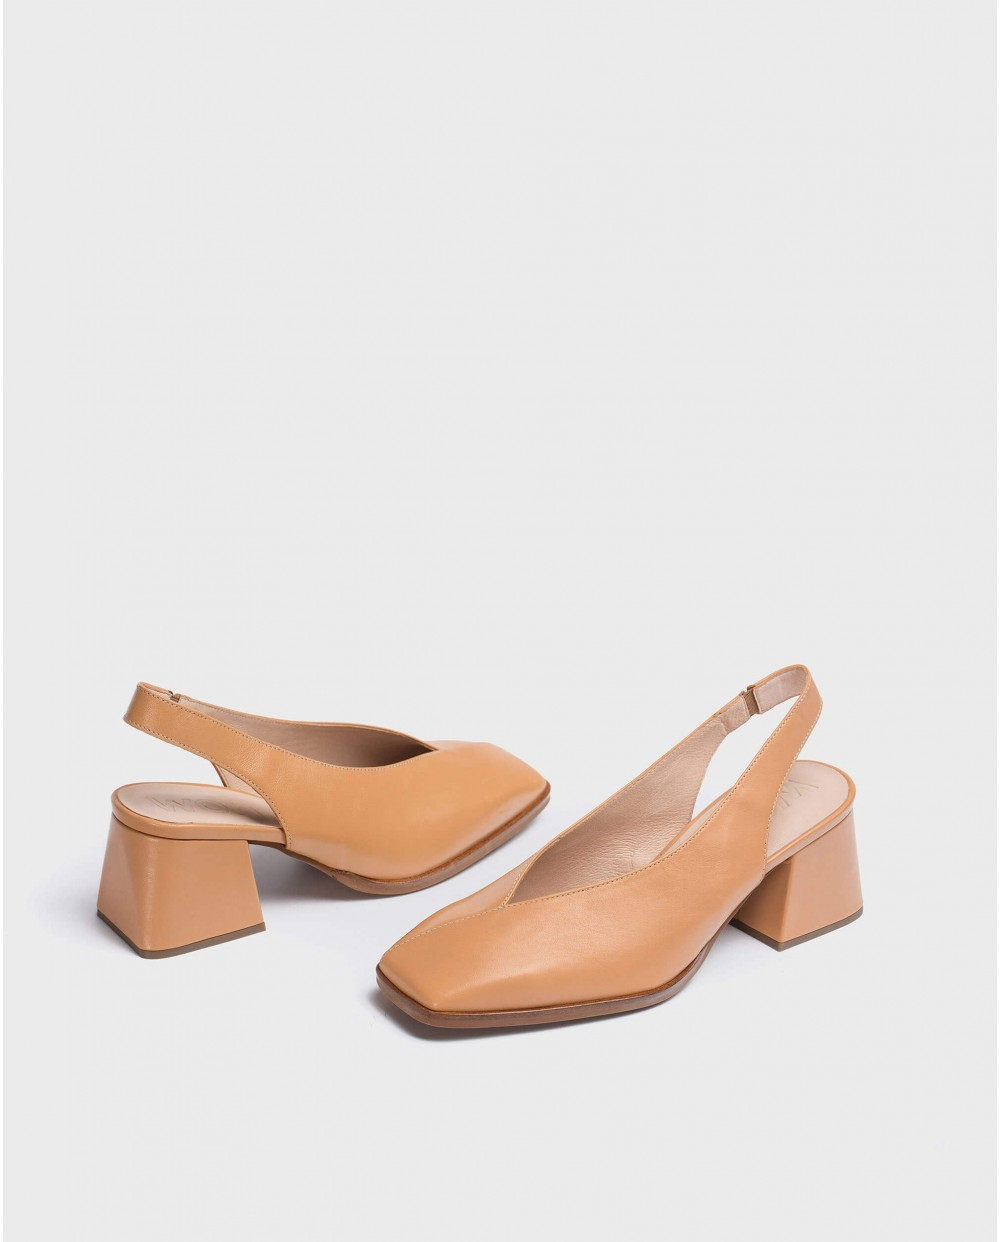 Wonders-Heels-V cut shoe